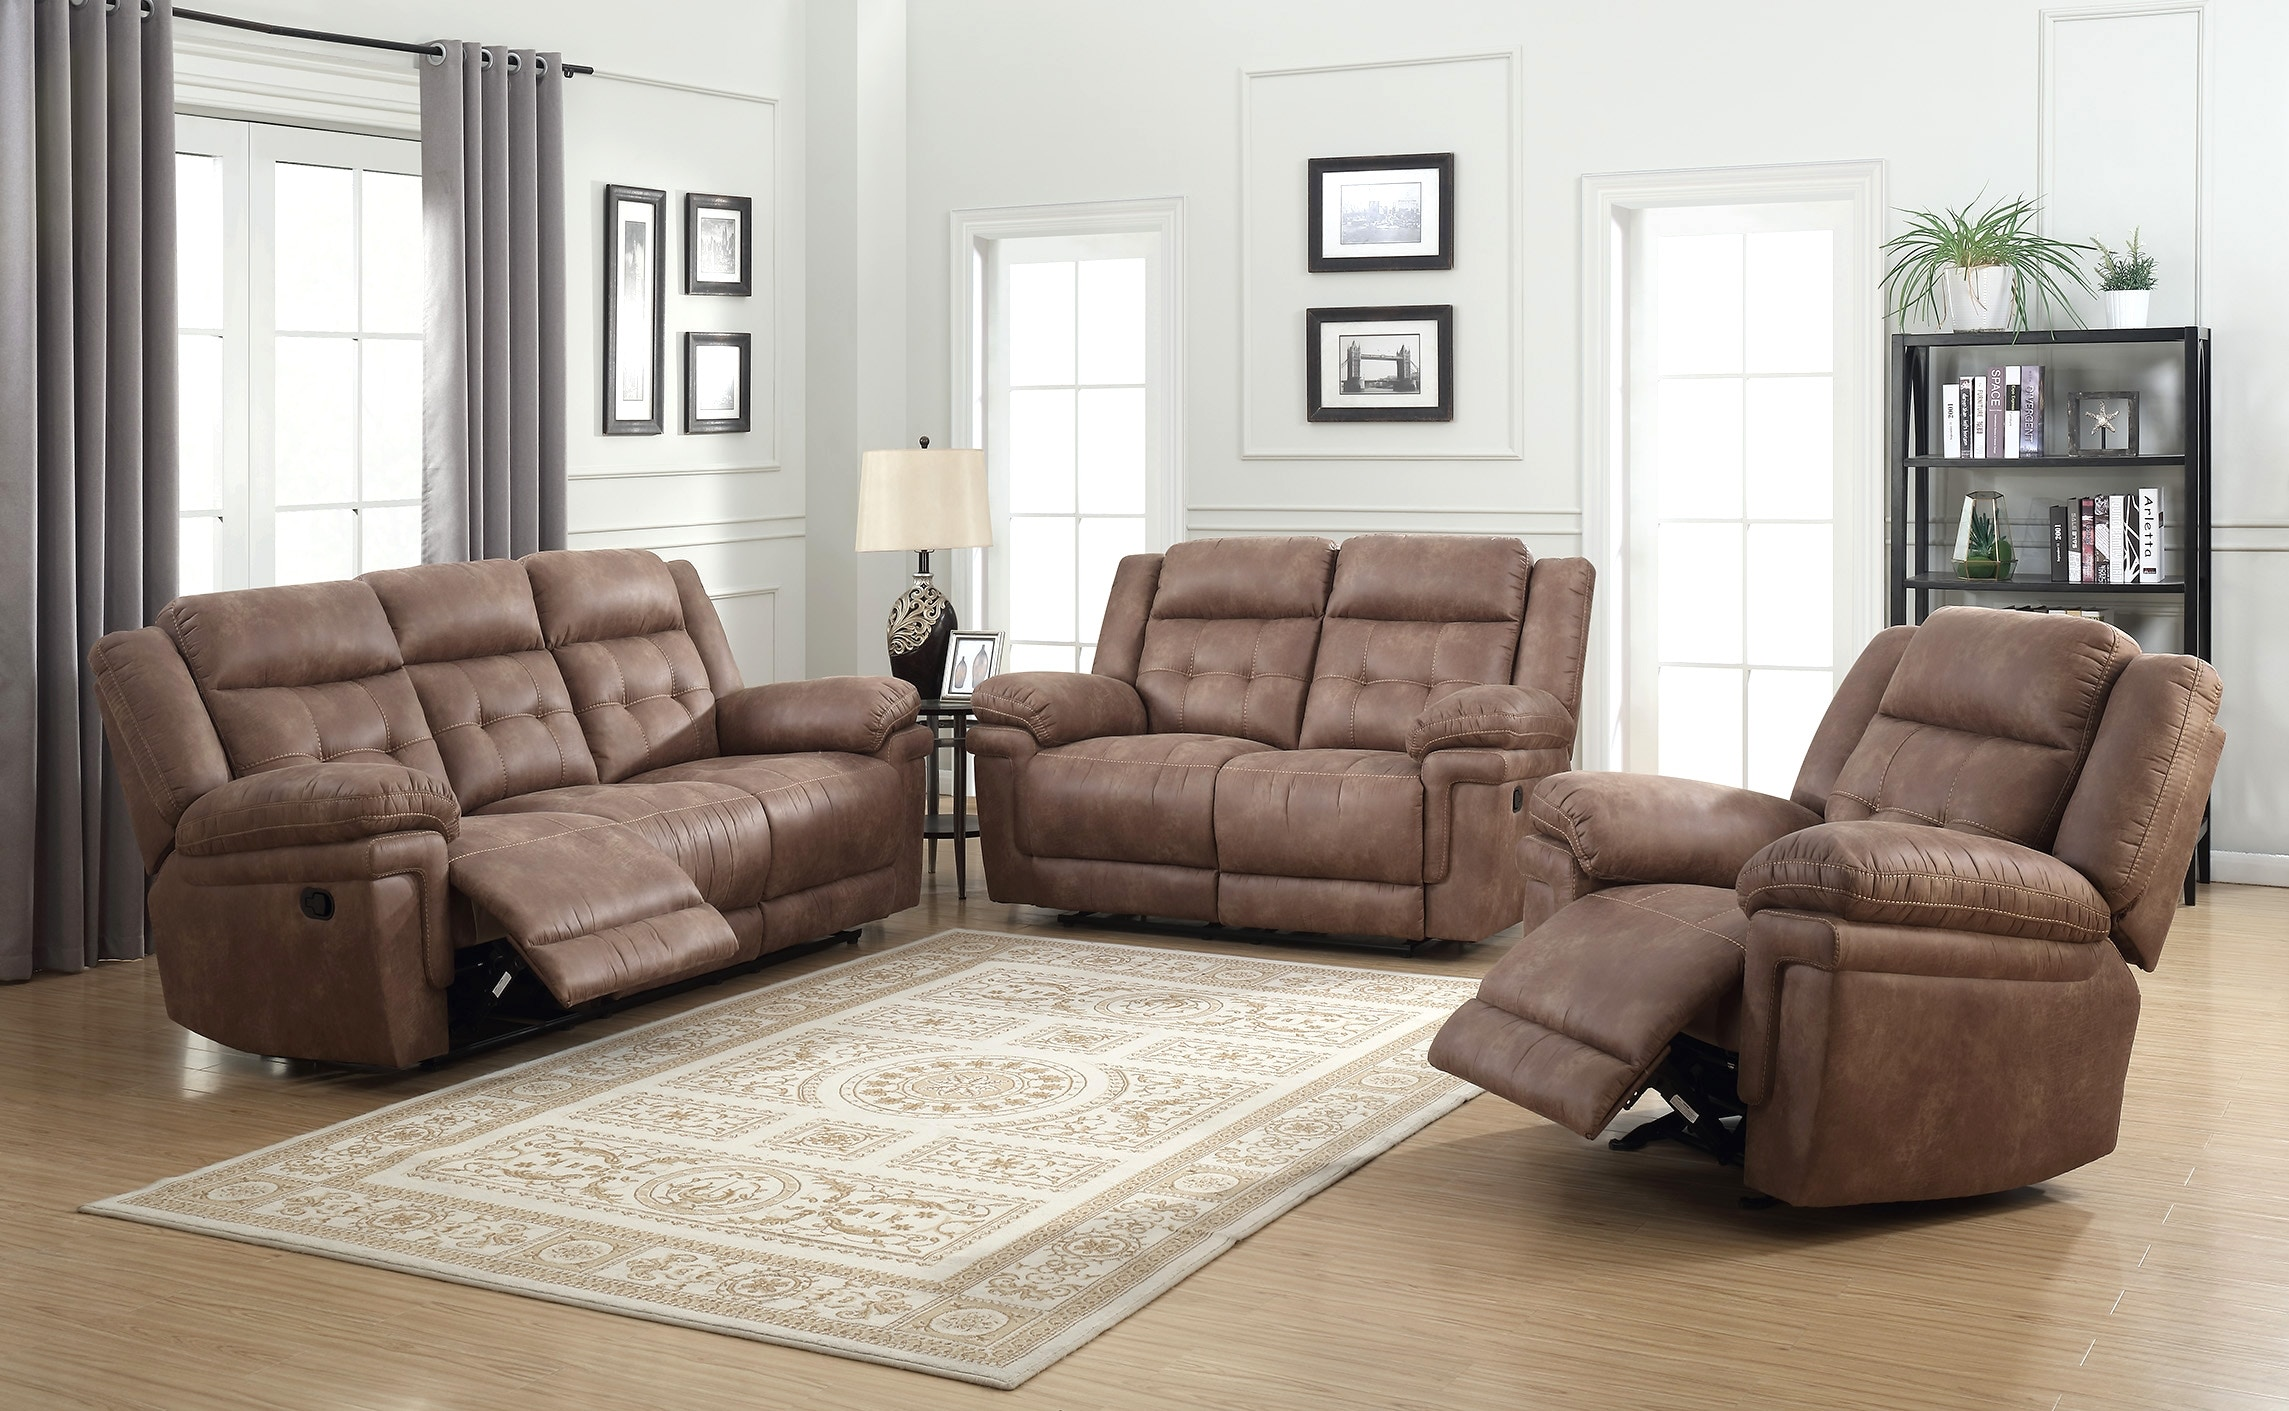 Charmant Ian Reclining Sofa And Loveseat, Recliner FREE